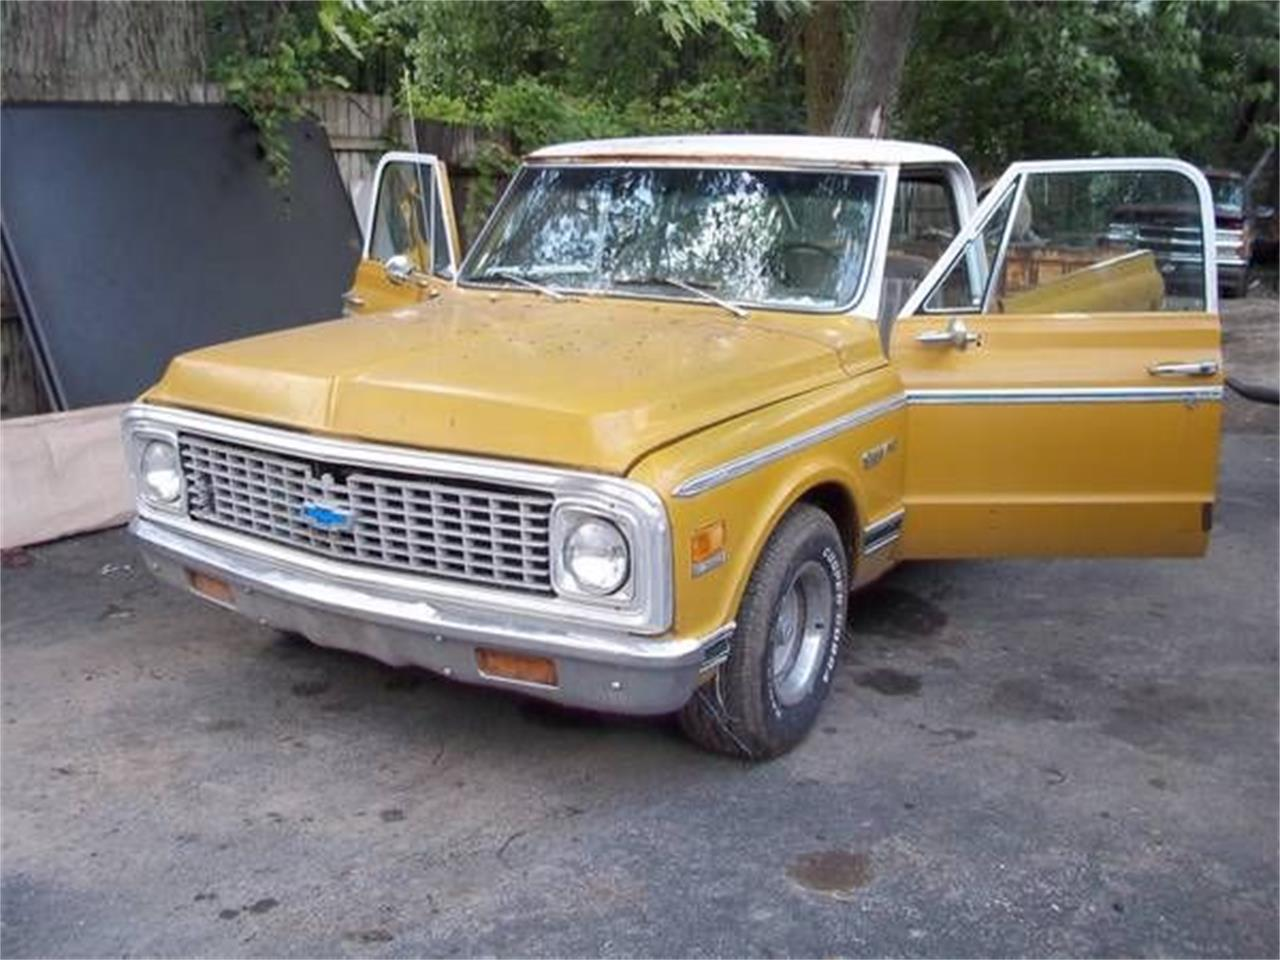 1971 Chevrolet C10 for sale in Cadillac, MI – photo 3